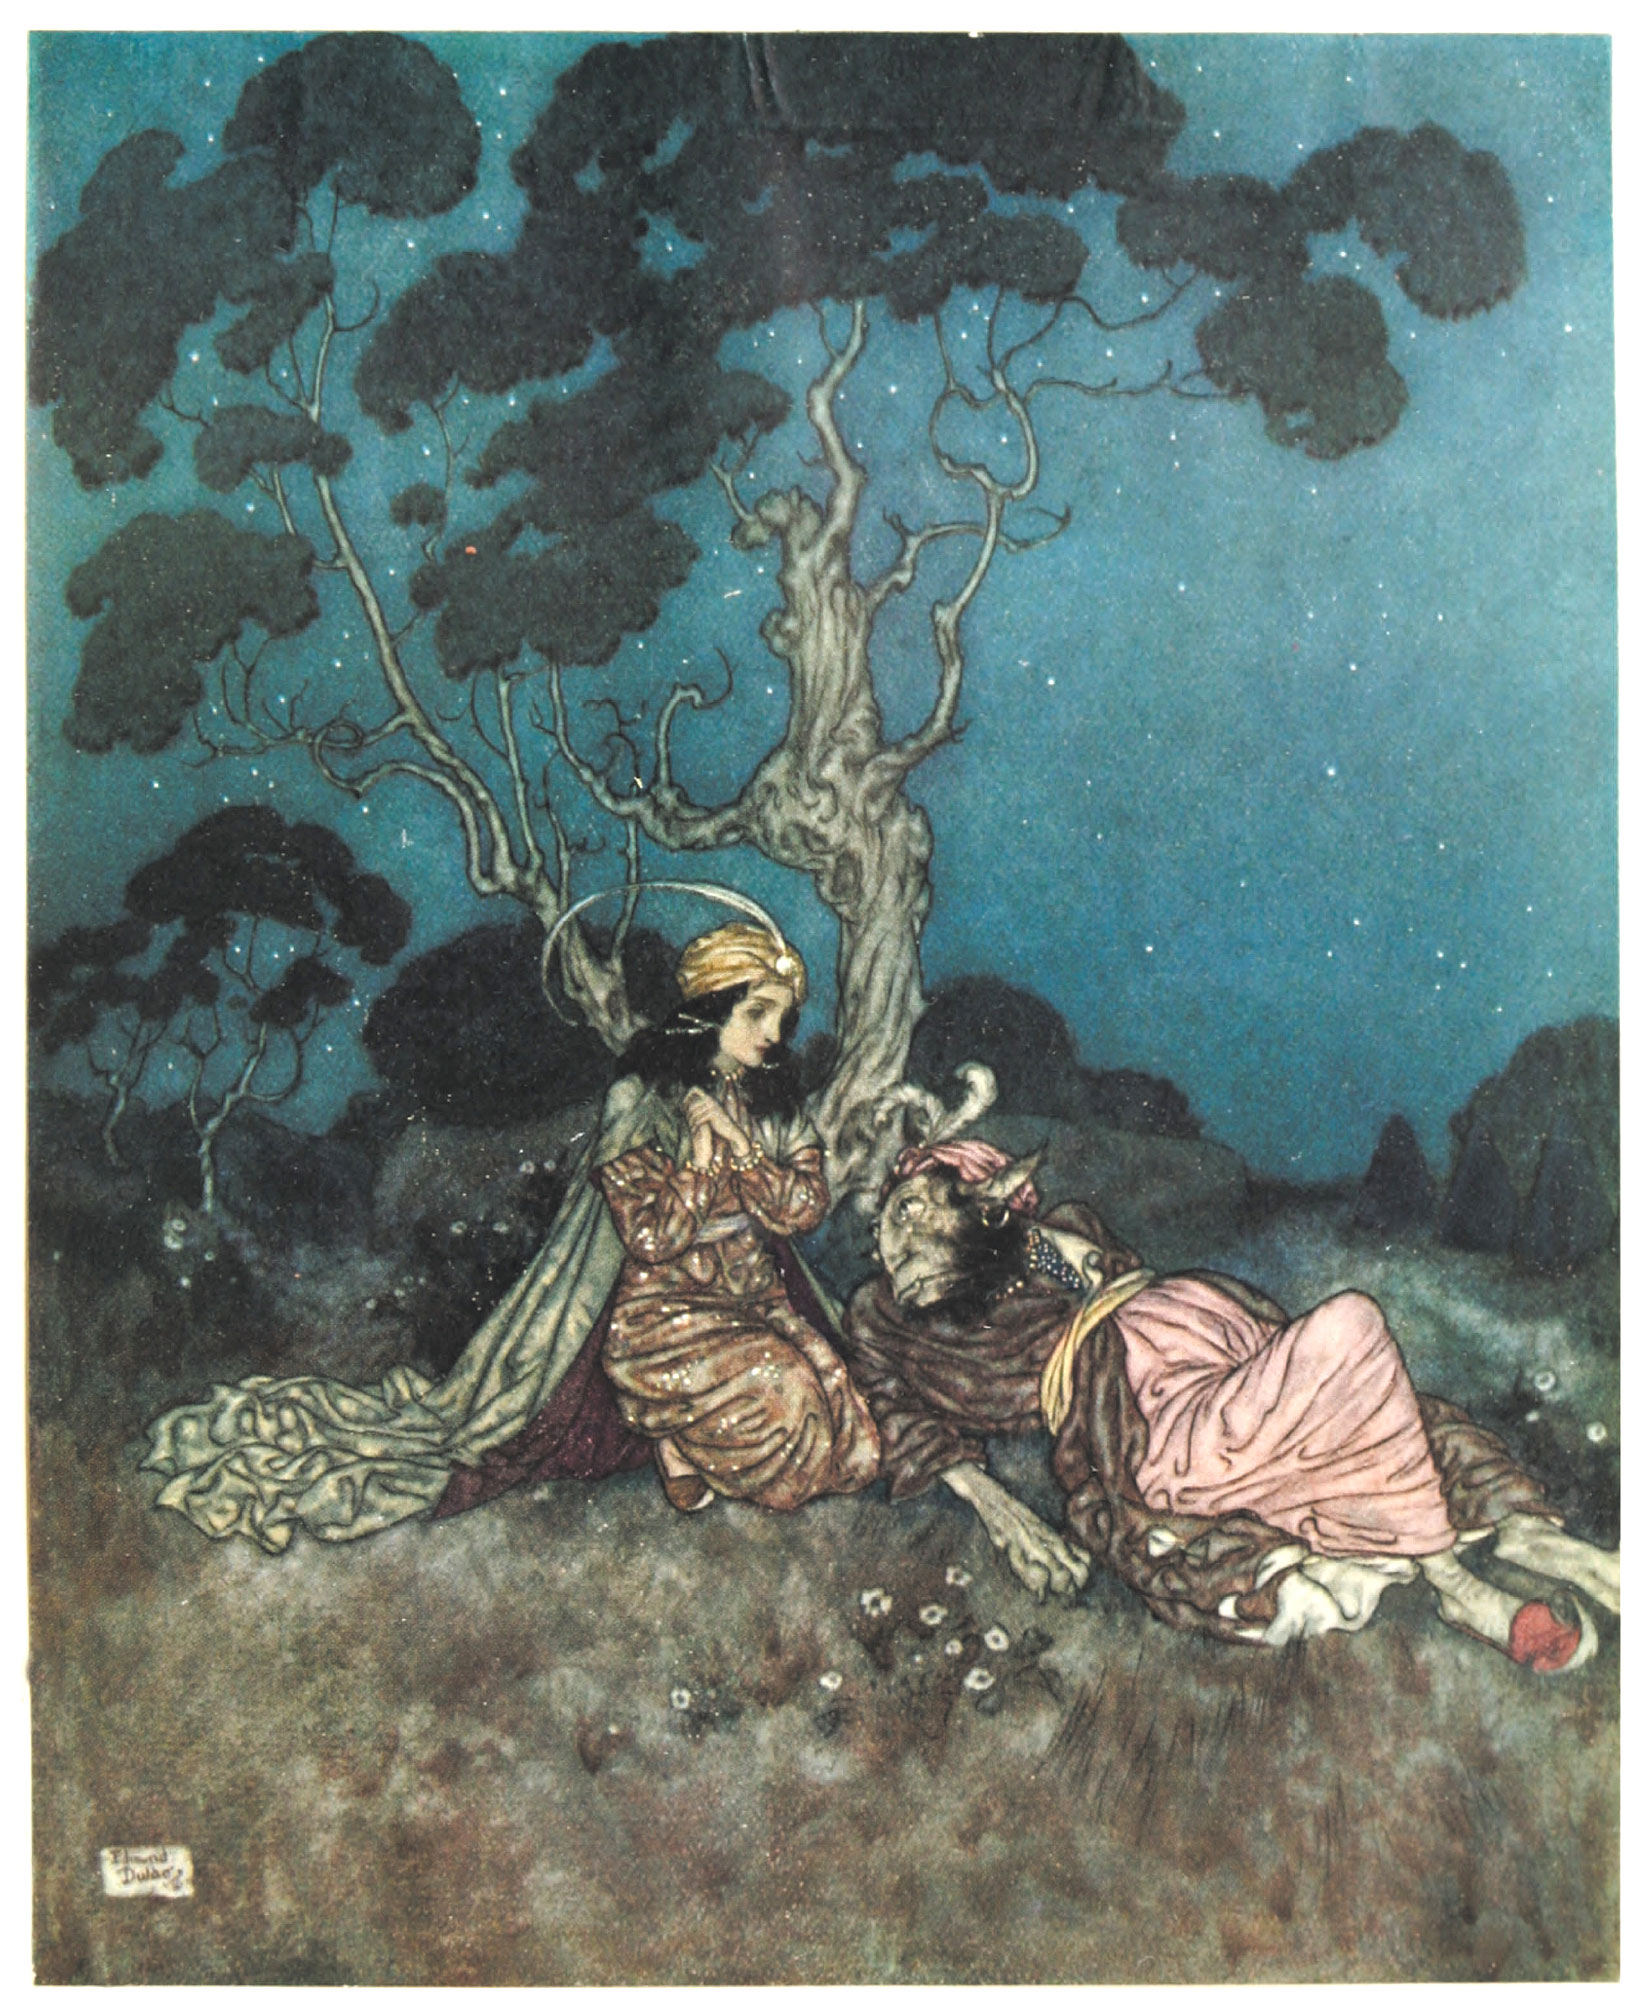 'Ah! What a fright you have given me! She murmured.' Illustration by Edmund Dulac